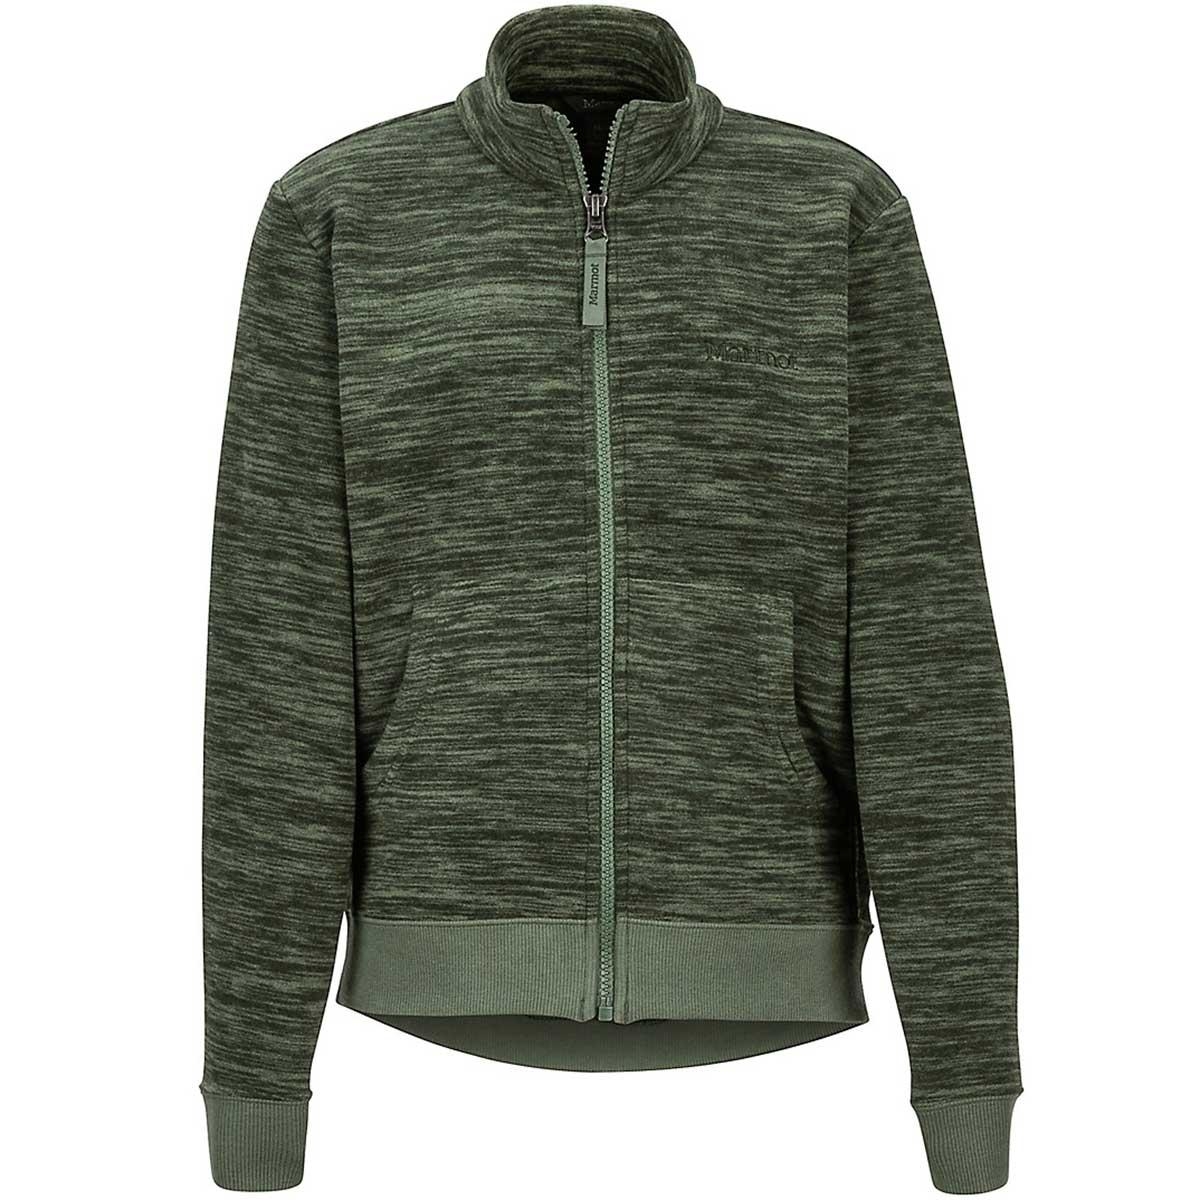 Marmot boys' Couloir Fleece Jacket in Crocodile Heather front view